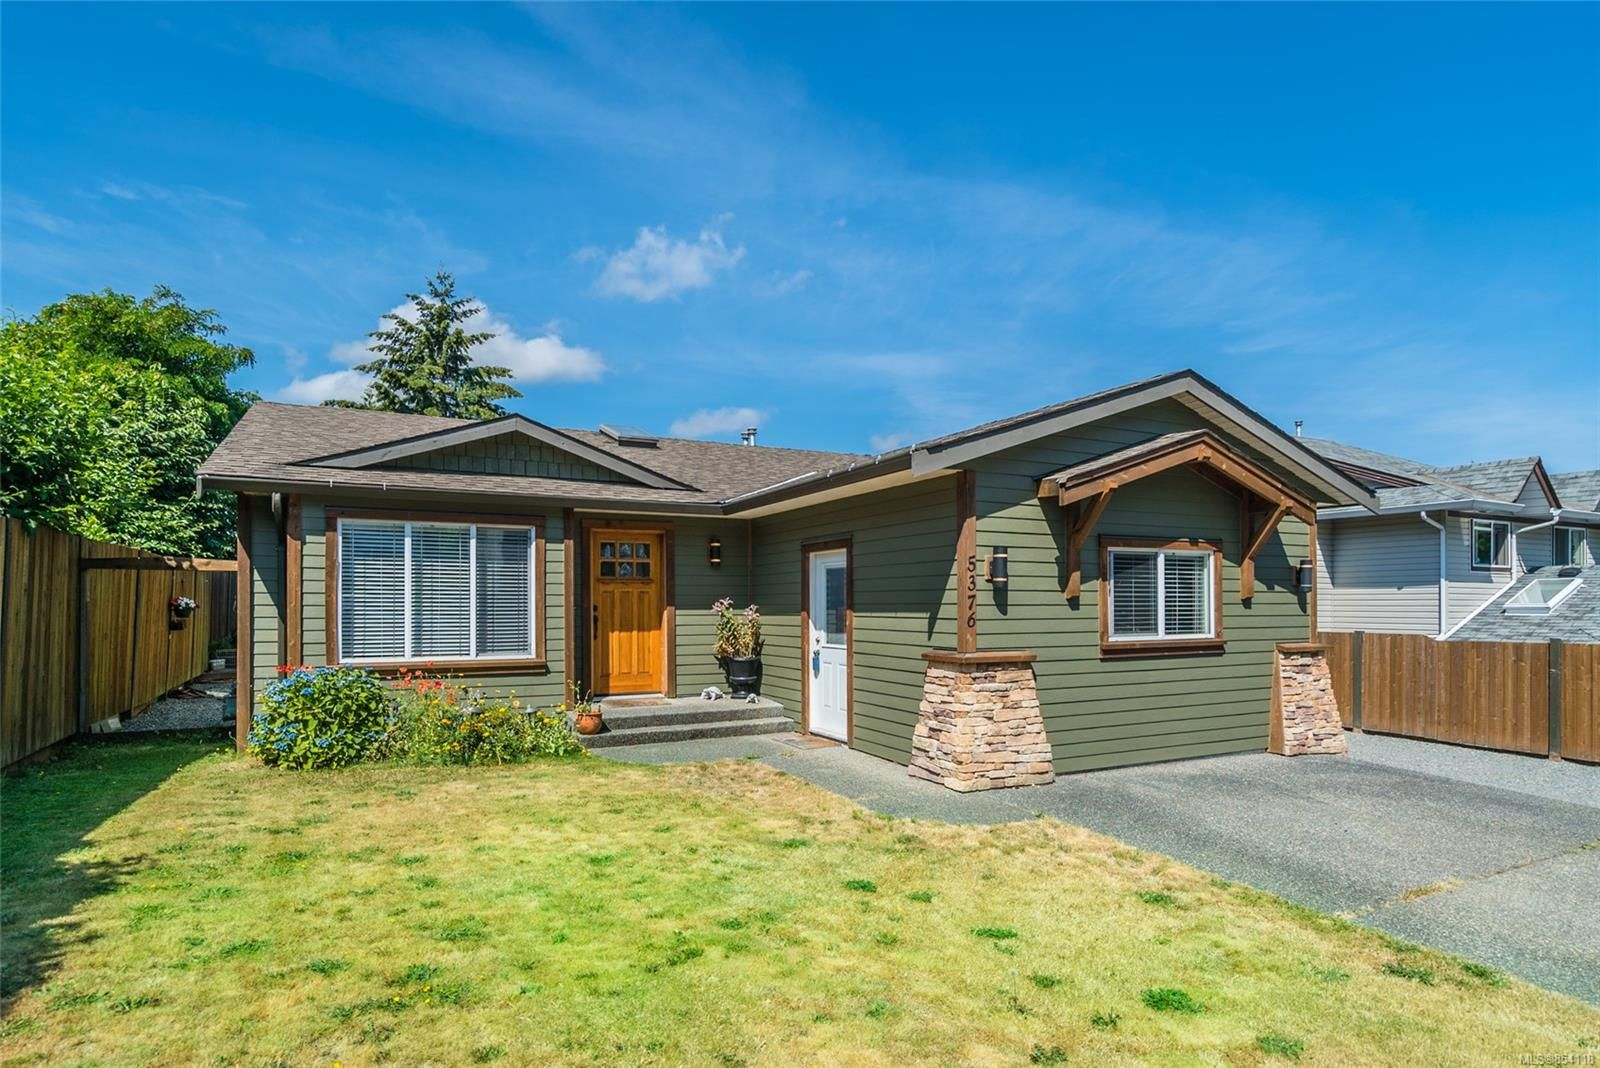 Main Photo: 5376 Colinwood Dr in Nanaimo: Na Pleasant Valley House for sale : MLS®# 854118